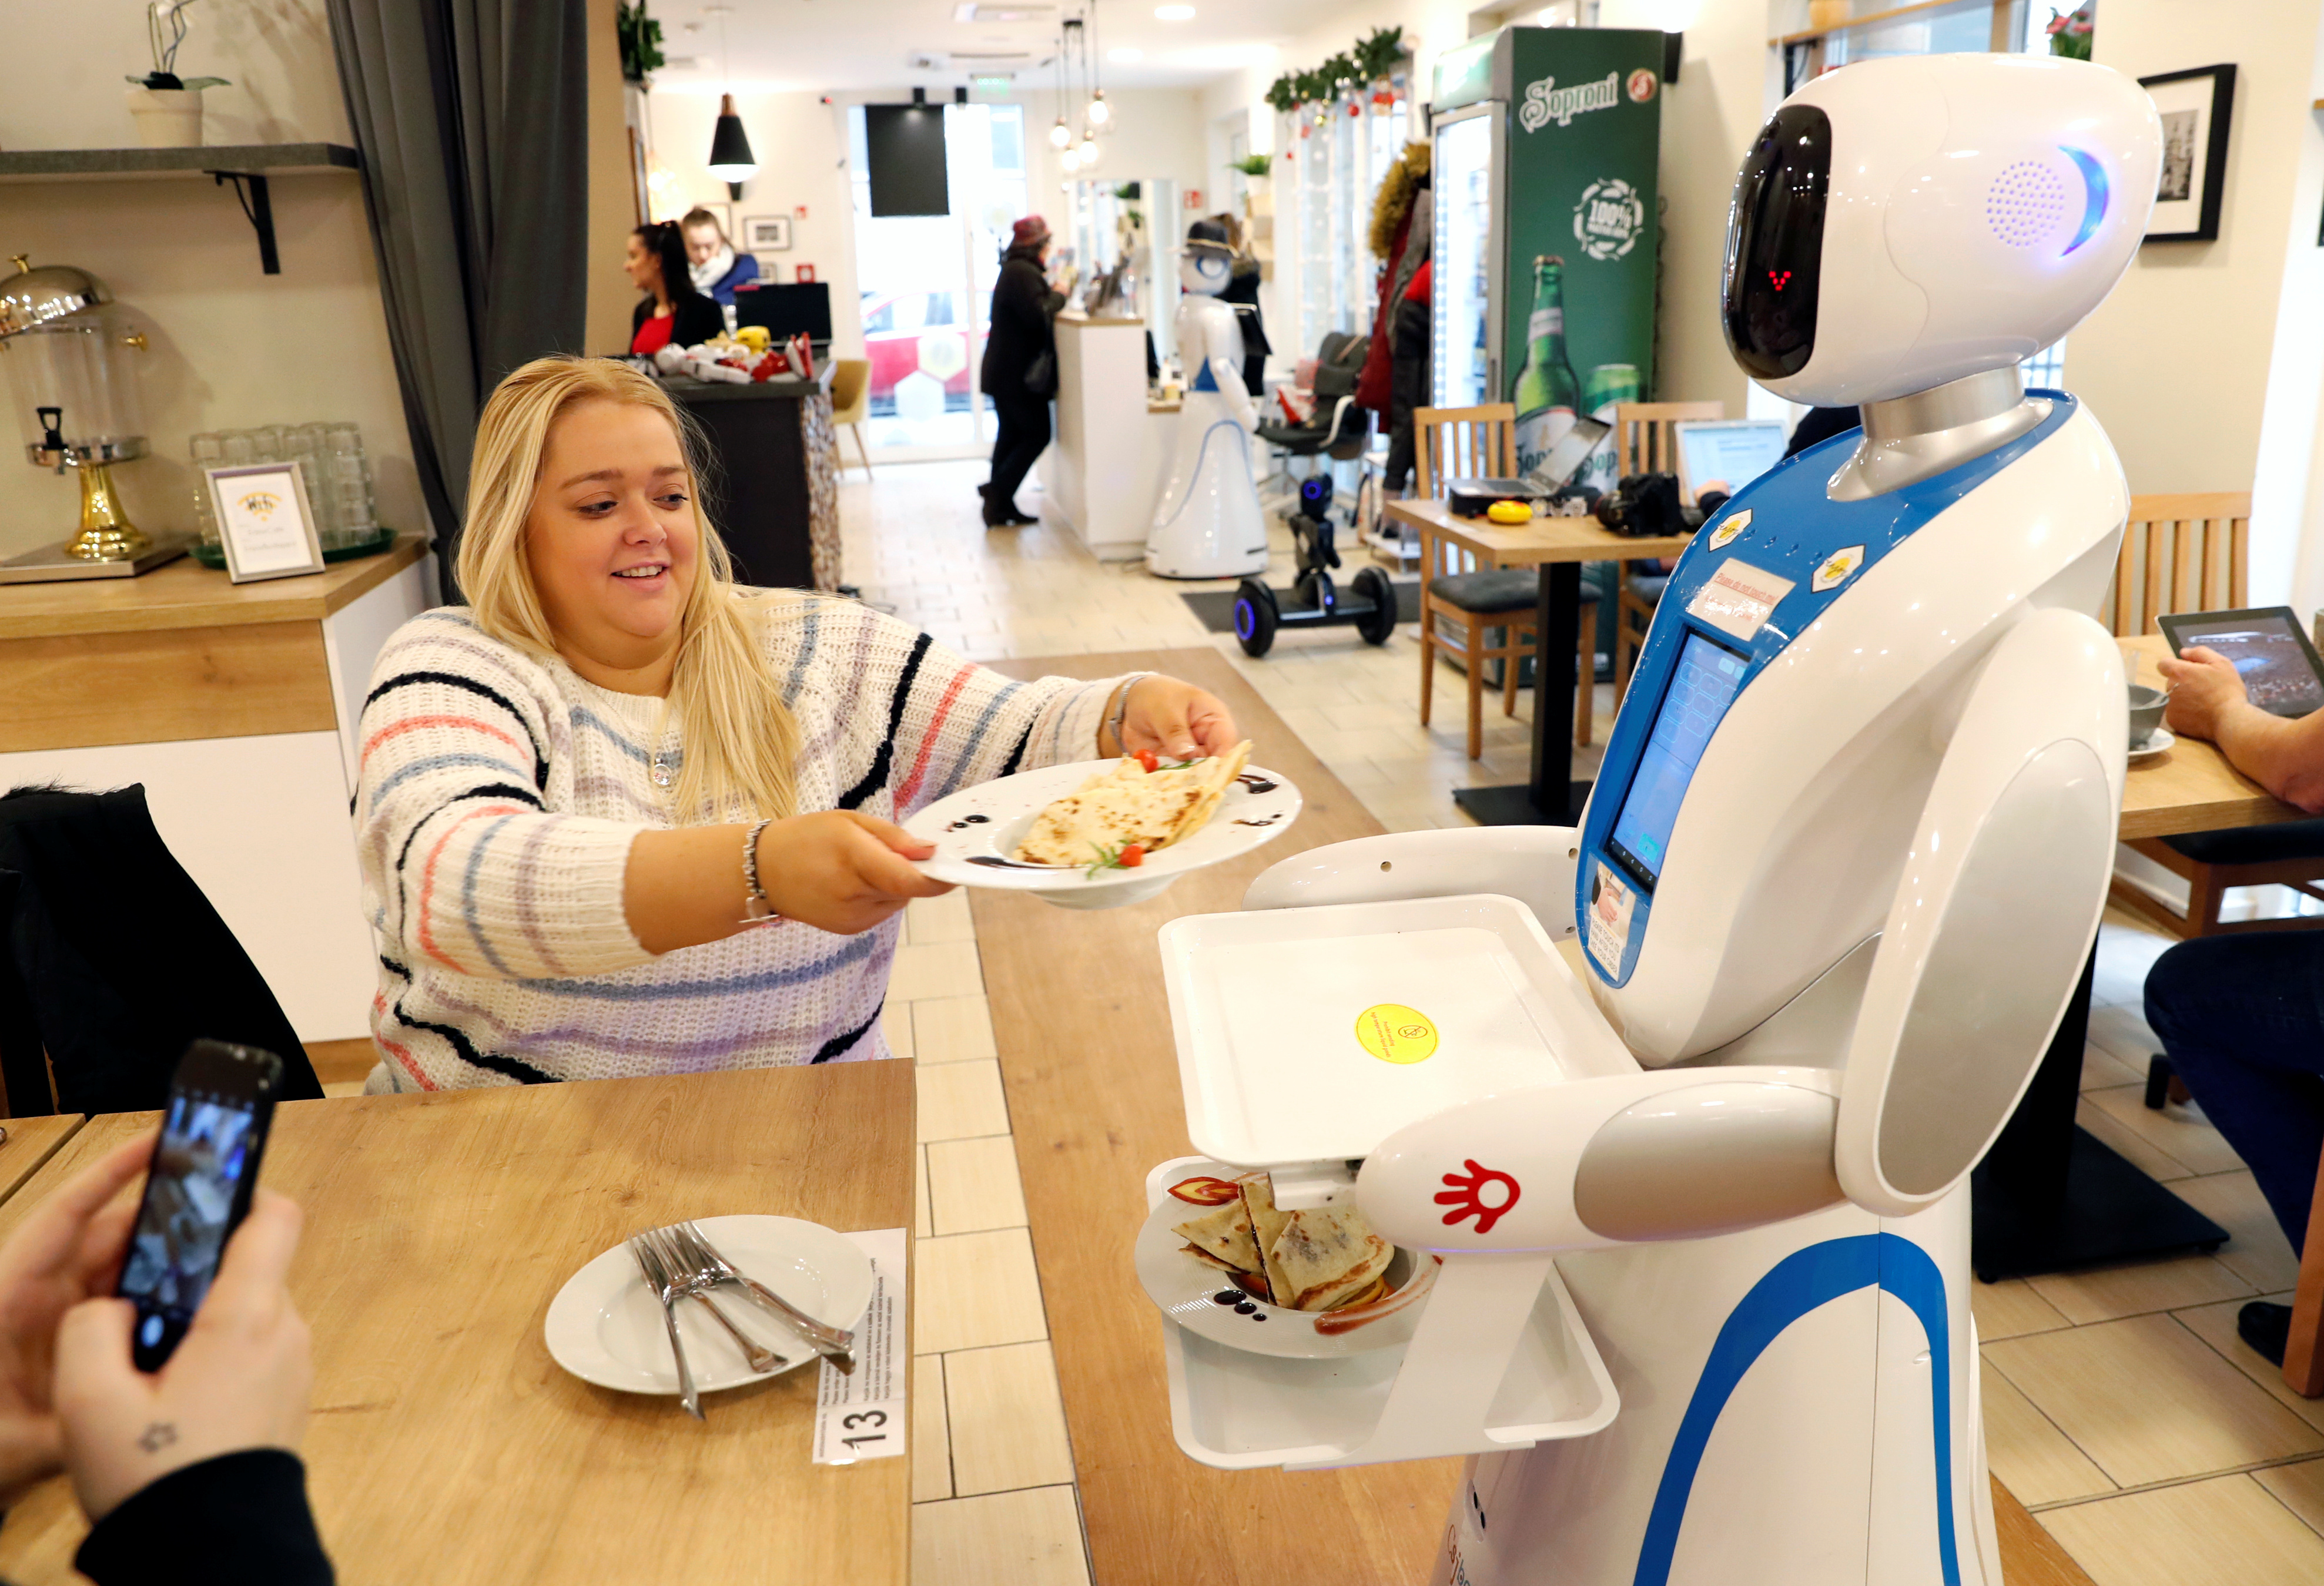 A robot waiter serves customers at a cafe in Budapest, Hungary, Jan. 24, 2019.